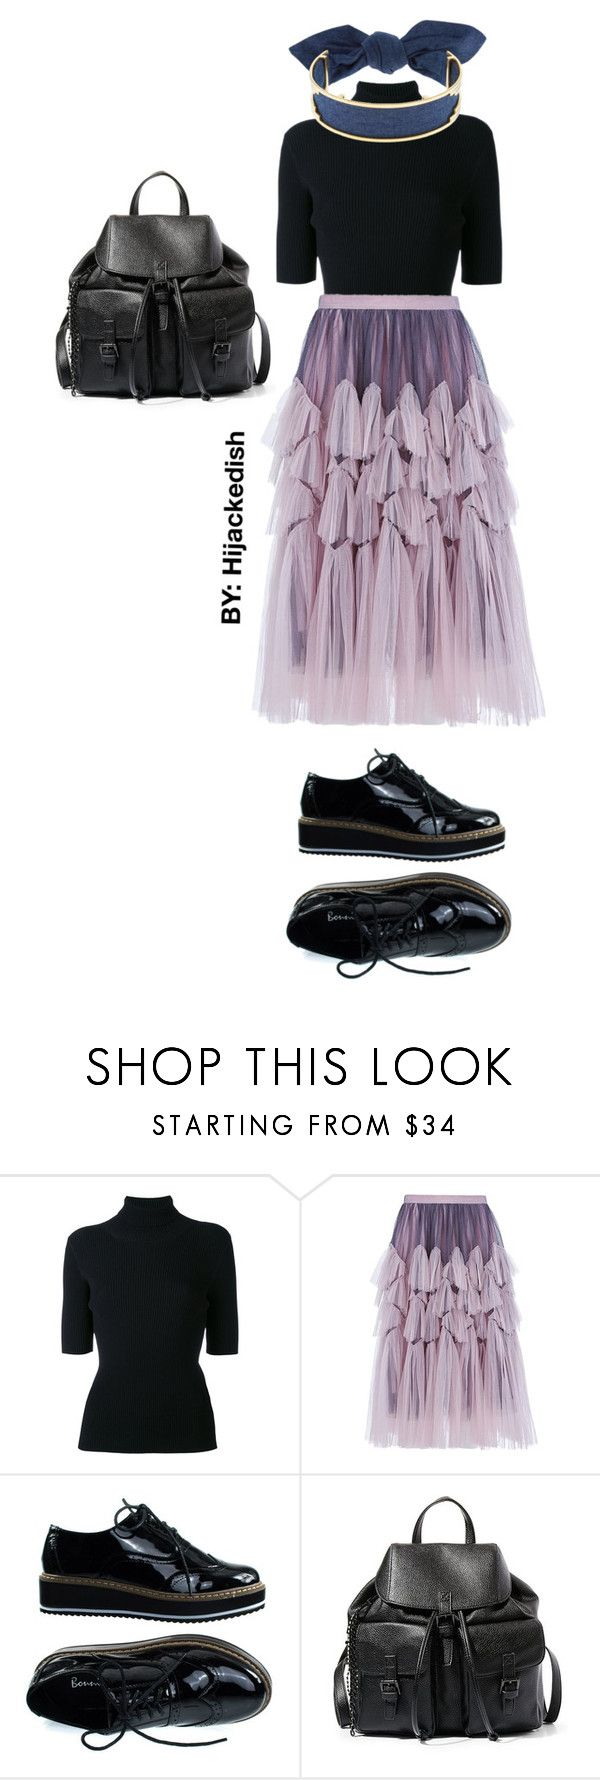 """""""Lilac ruffle clouds"""" by hijackedish on Polyvore featuring Valentino, Dries Van Noten, Steve Madden and Monica Sordo"""